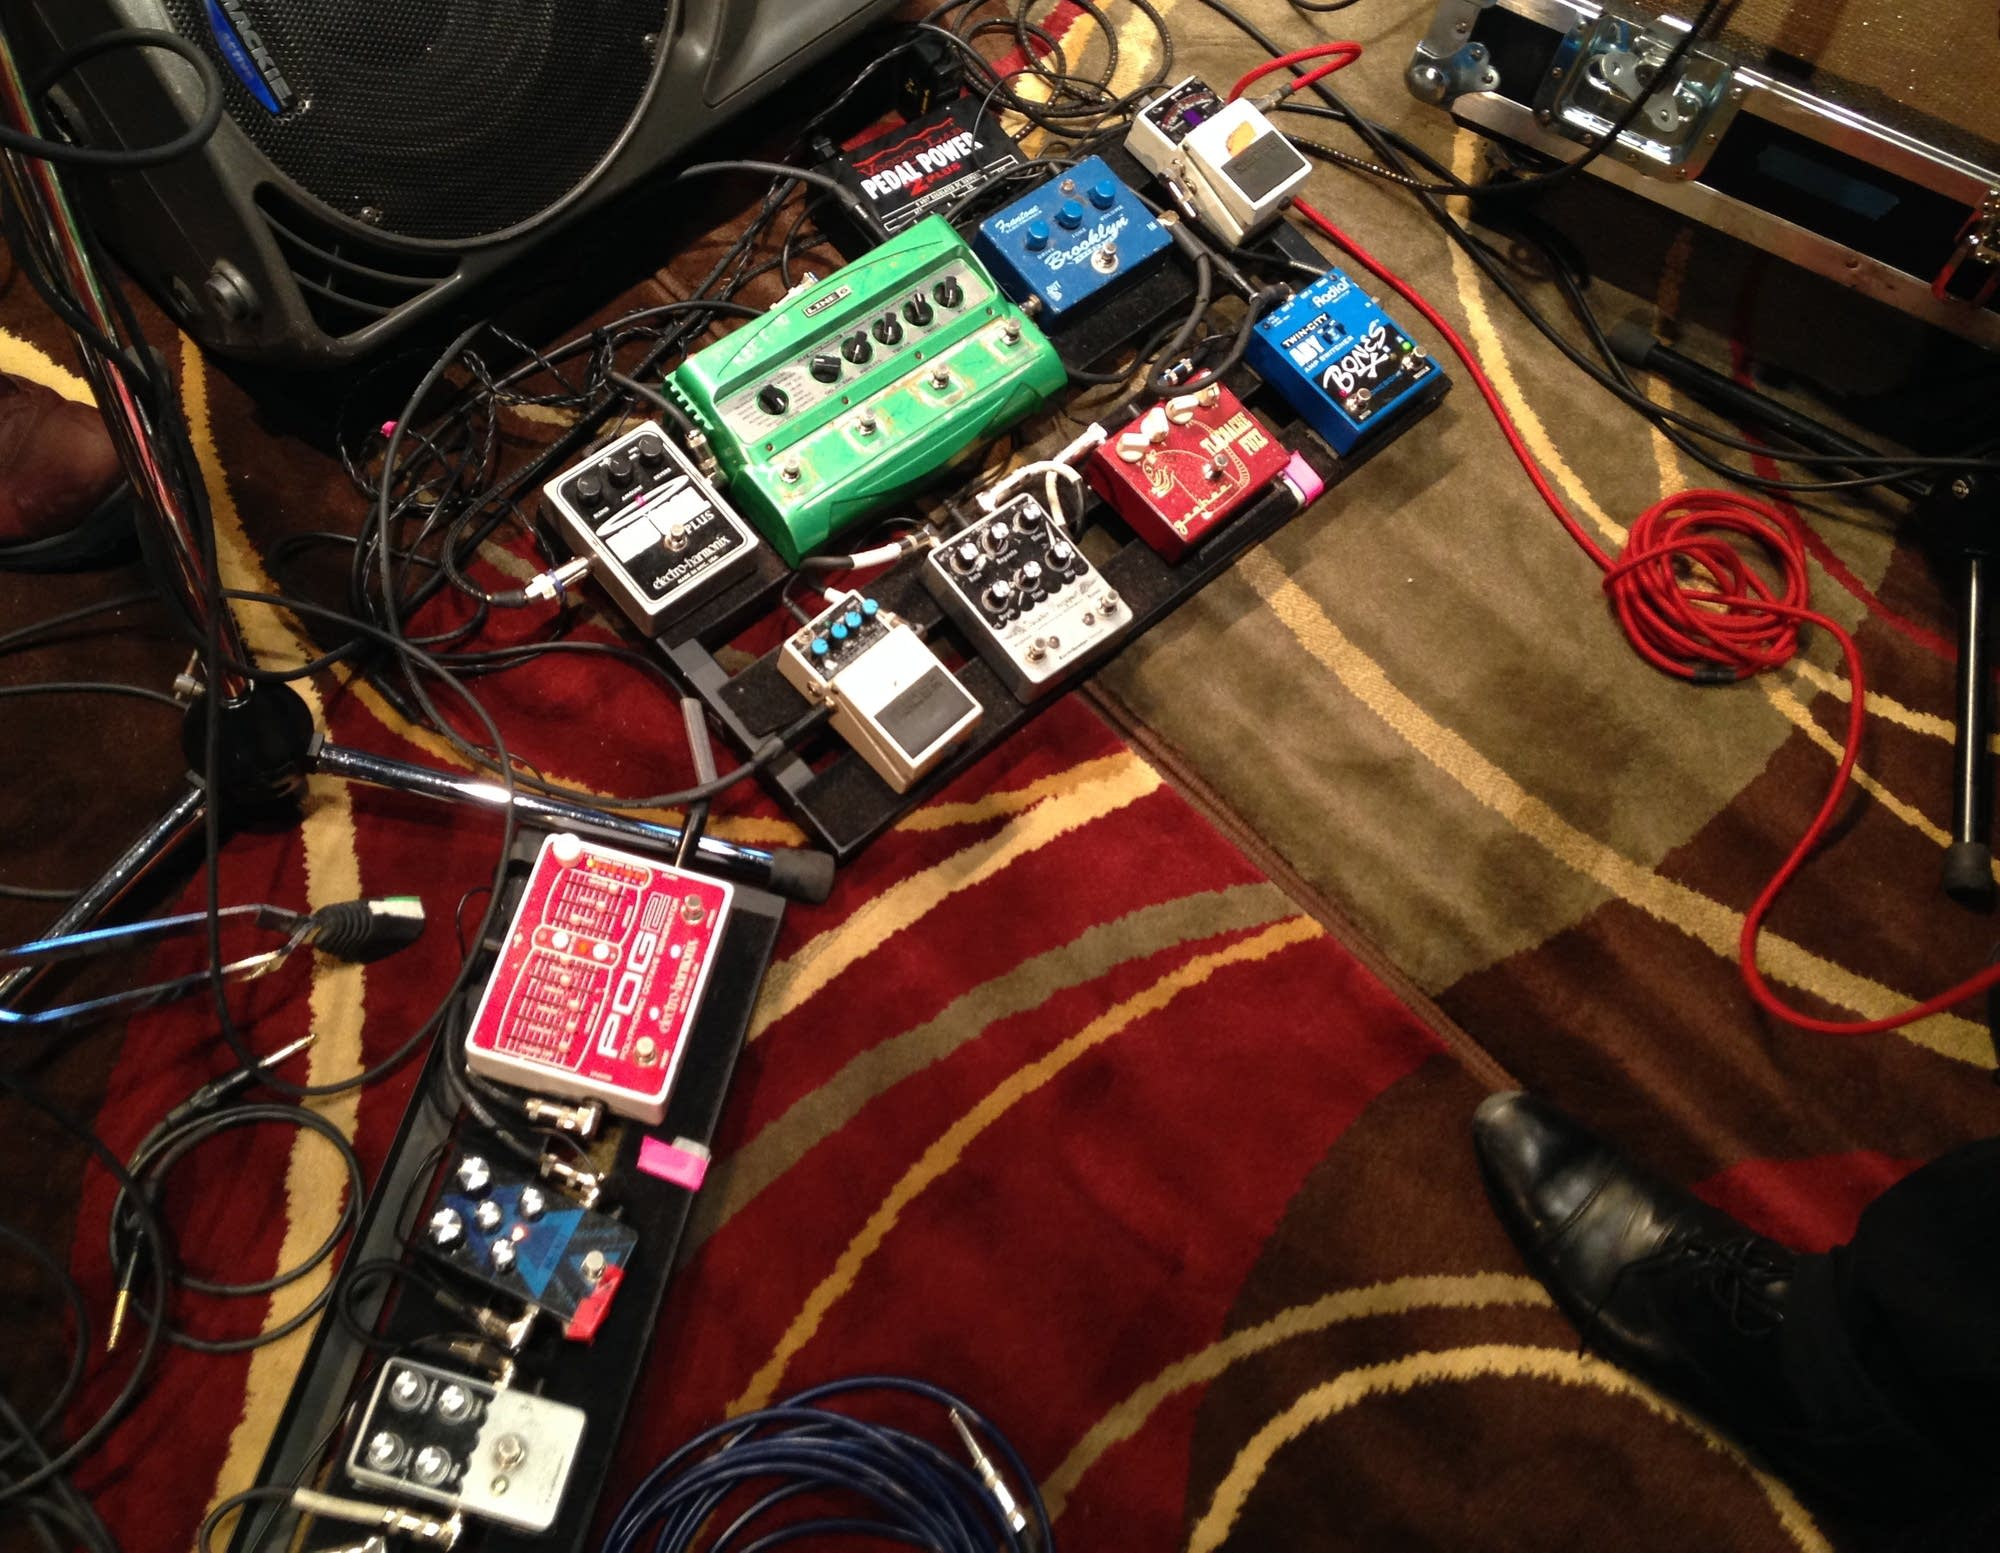 peter lalish lucius pov pedal boards